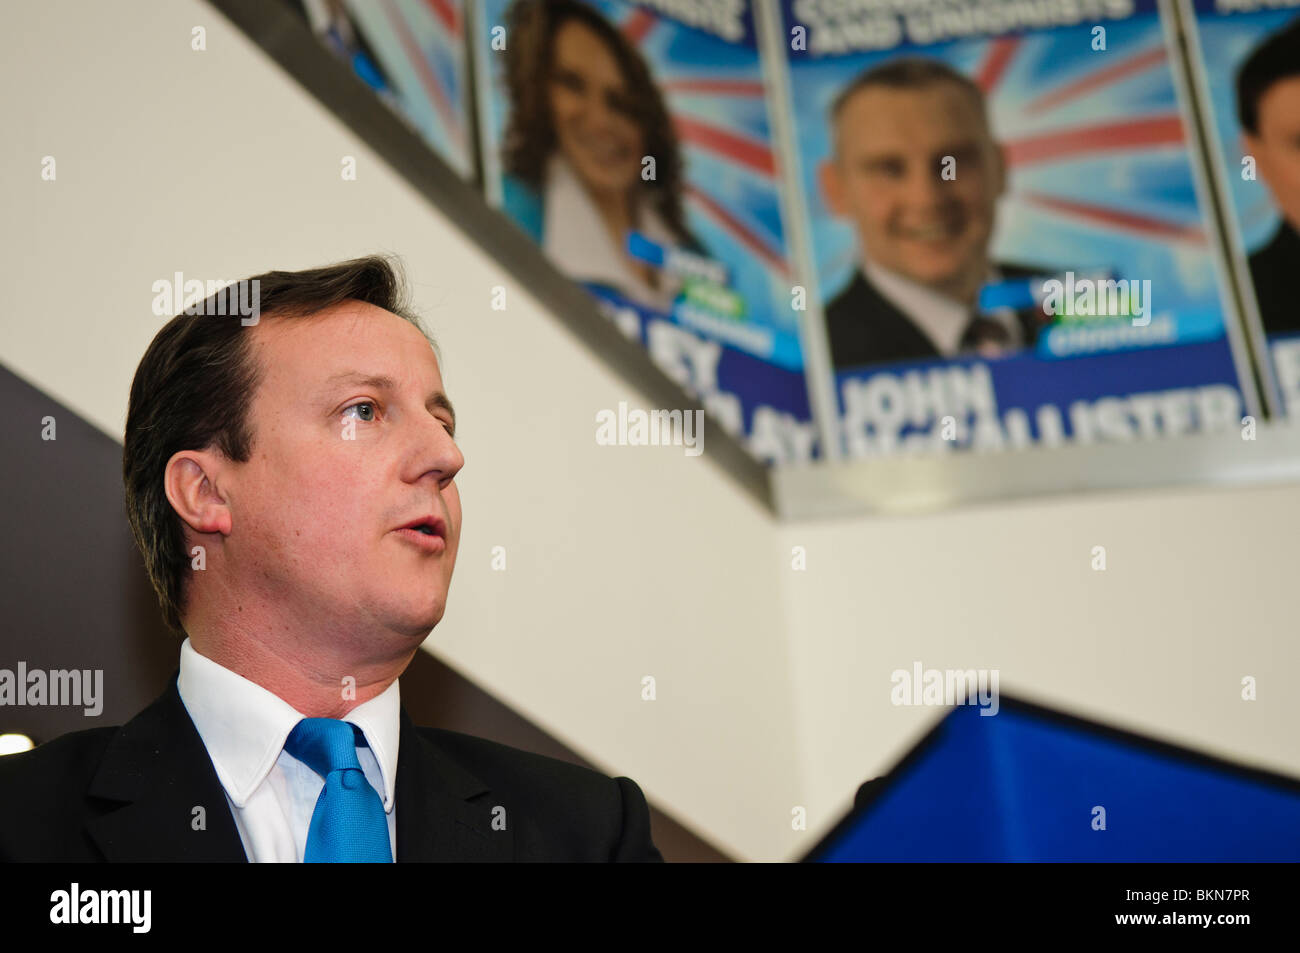 David Cameron on a visit to the Ulster Unionists and Conservatives, Belfast, prior to the 2010 election. Stock Photo